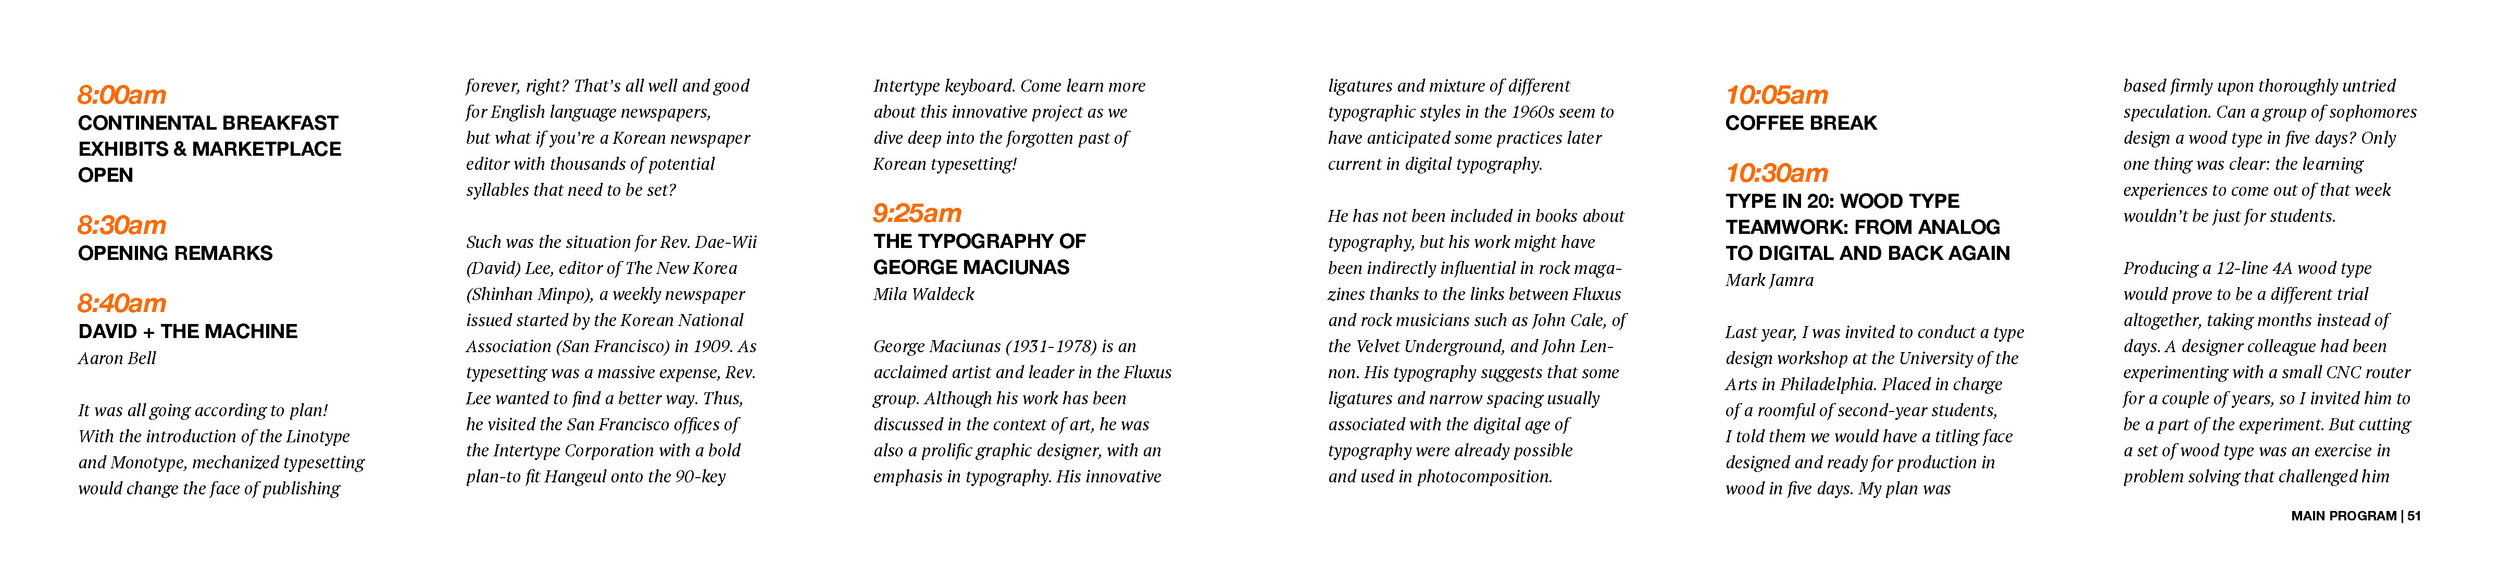 typecon_book_NEW_Page_26.jpg